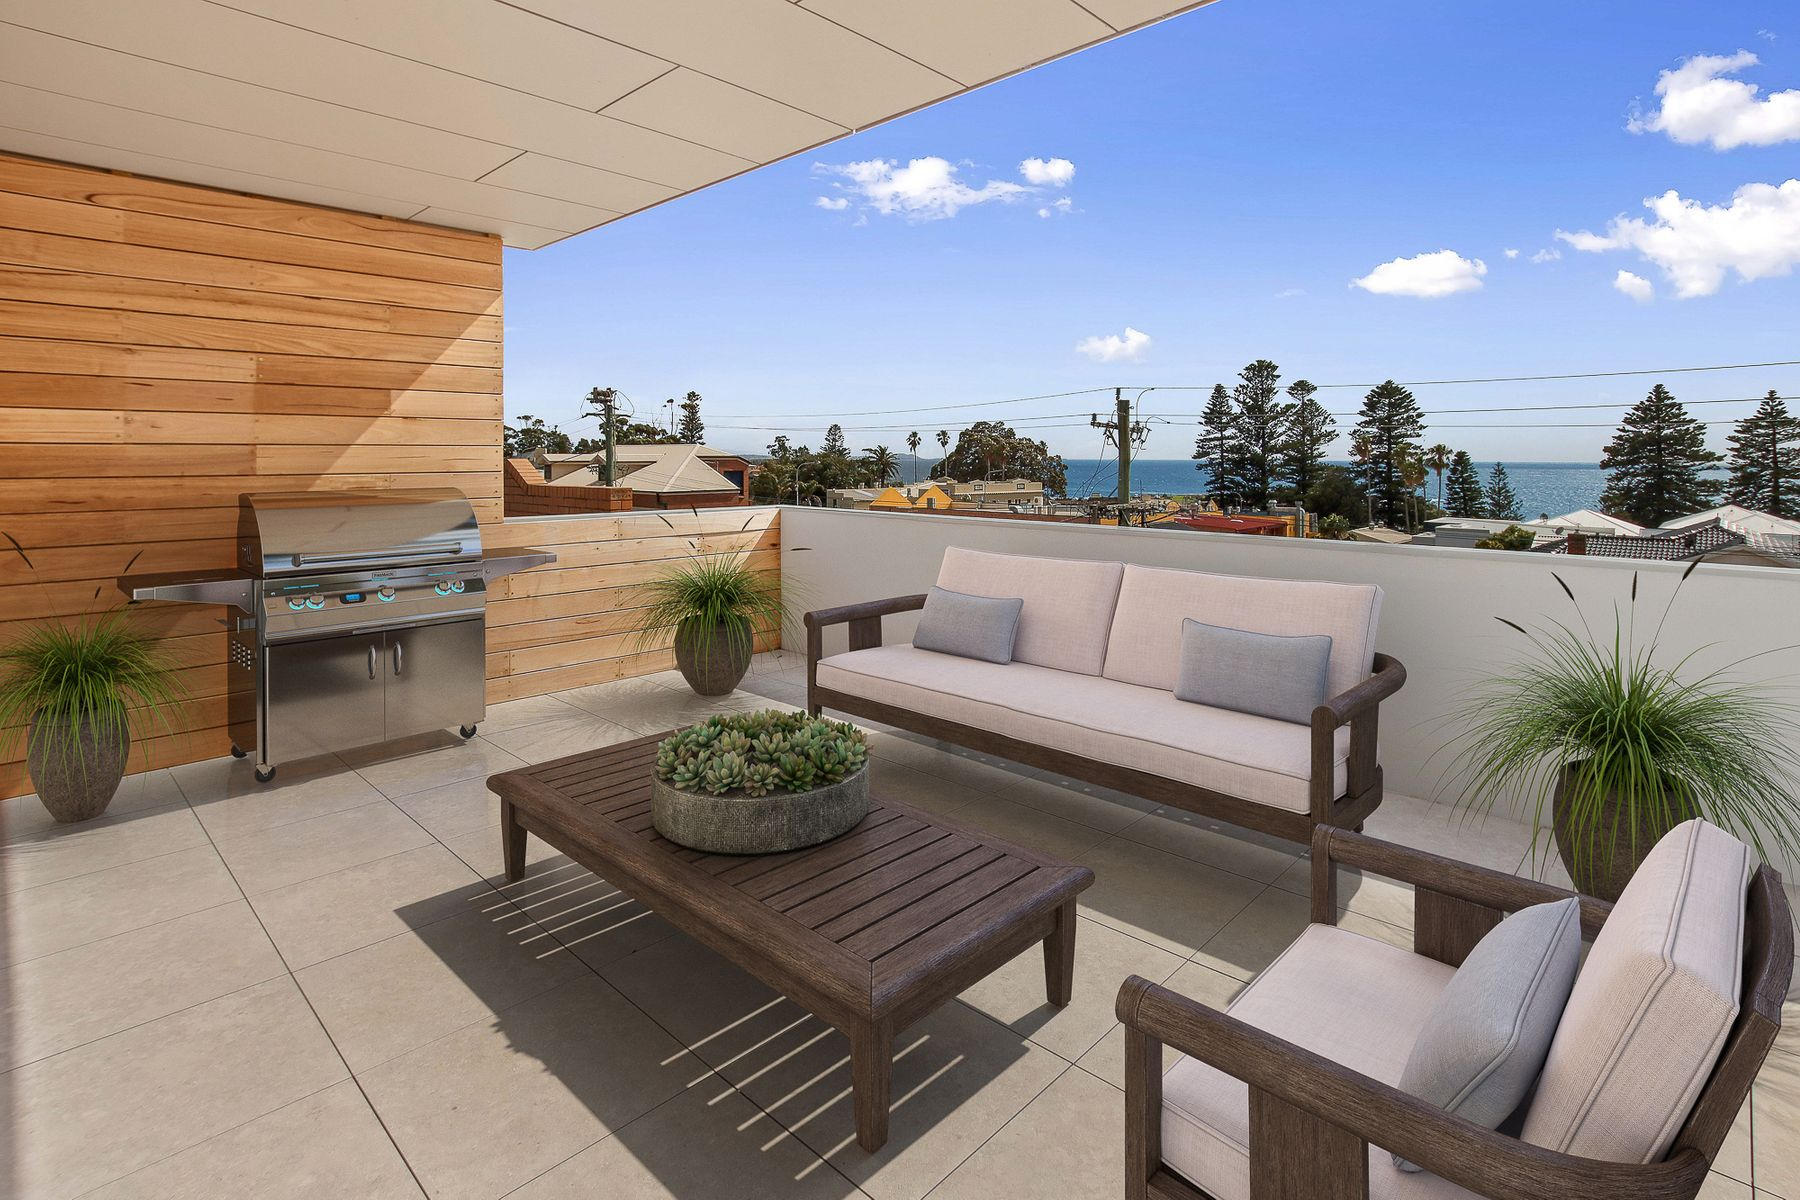 2/33 Wentworth Street, Shellharbour, NSW 2529